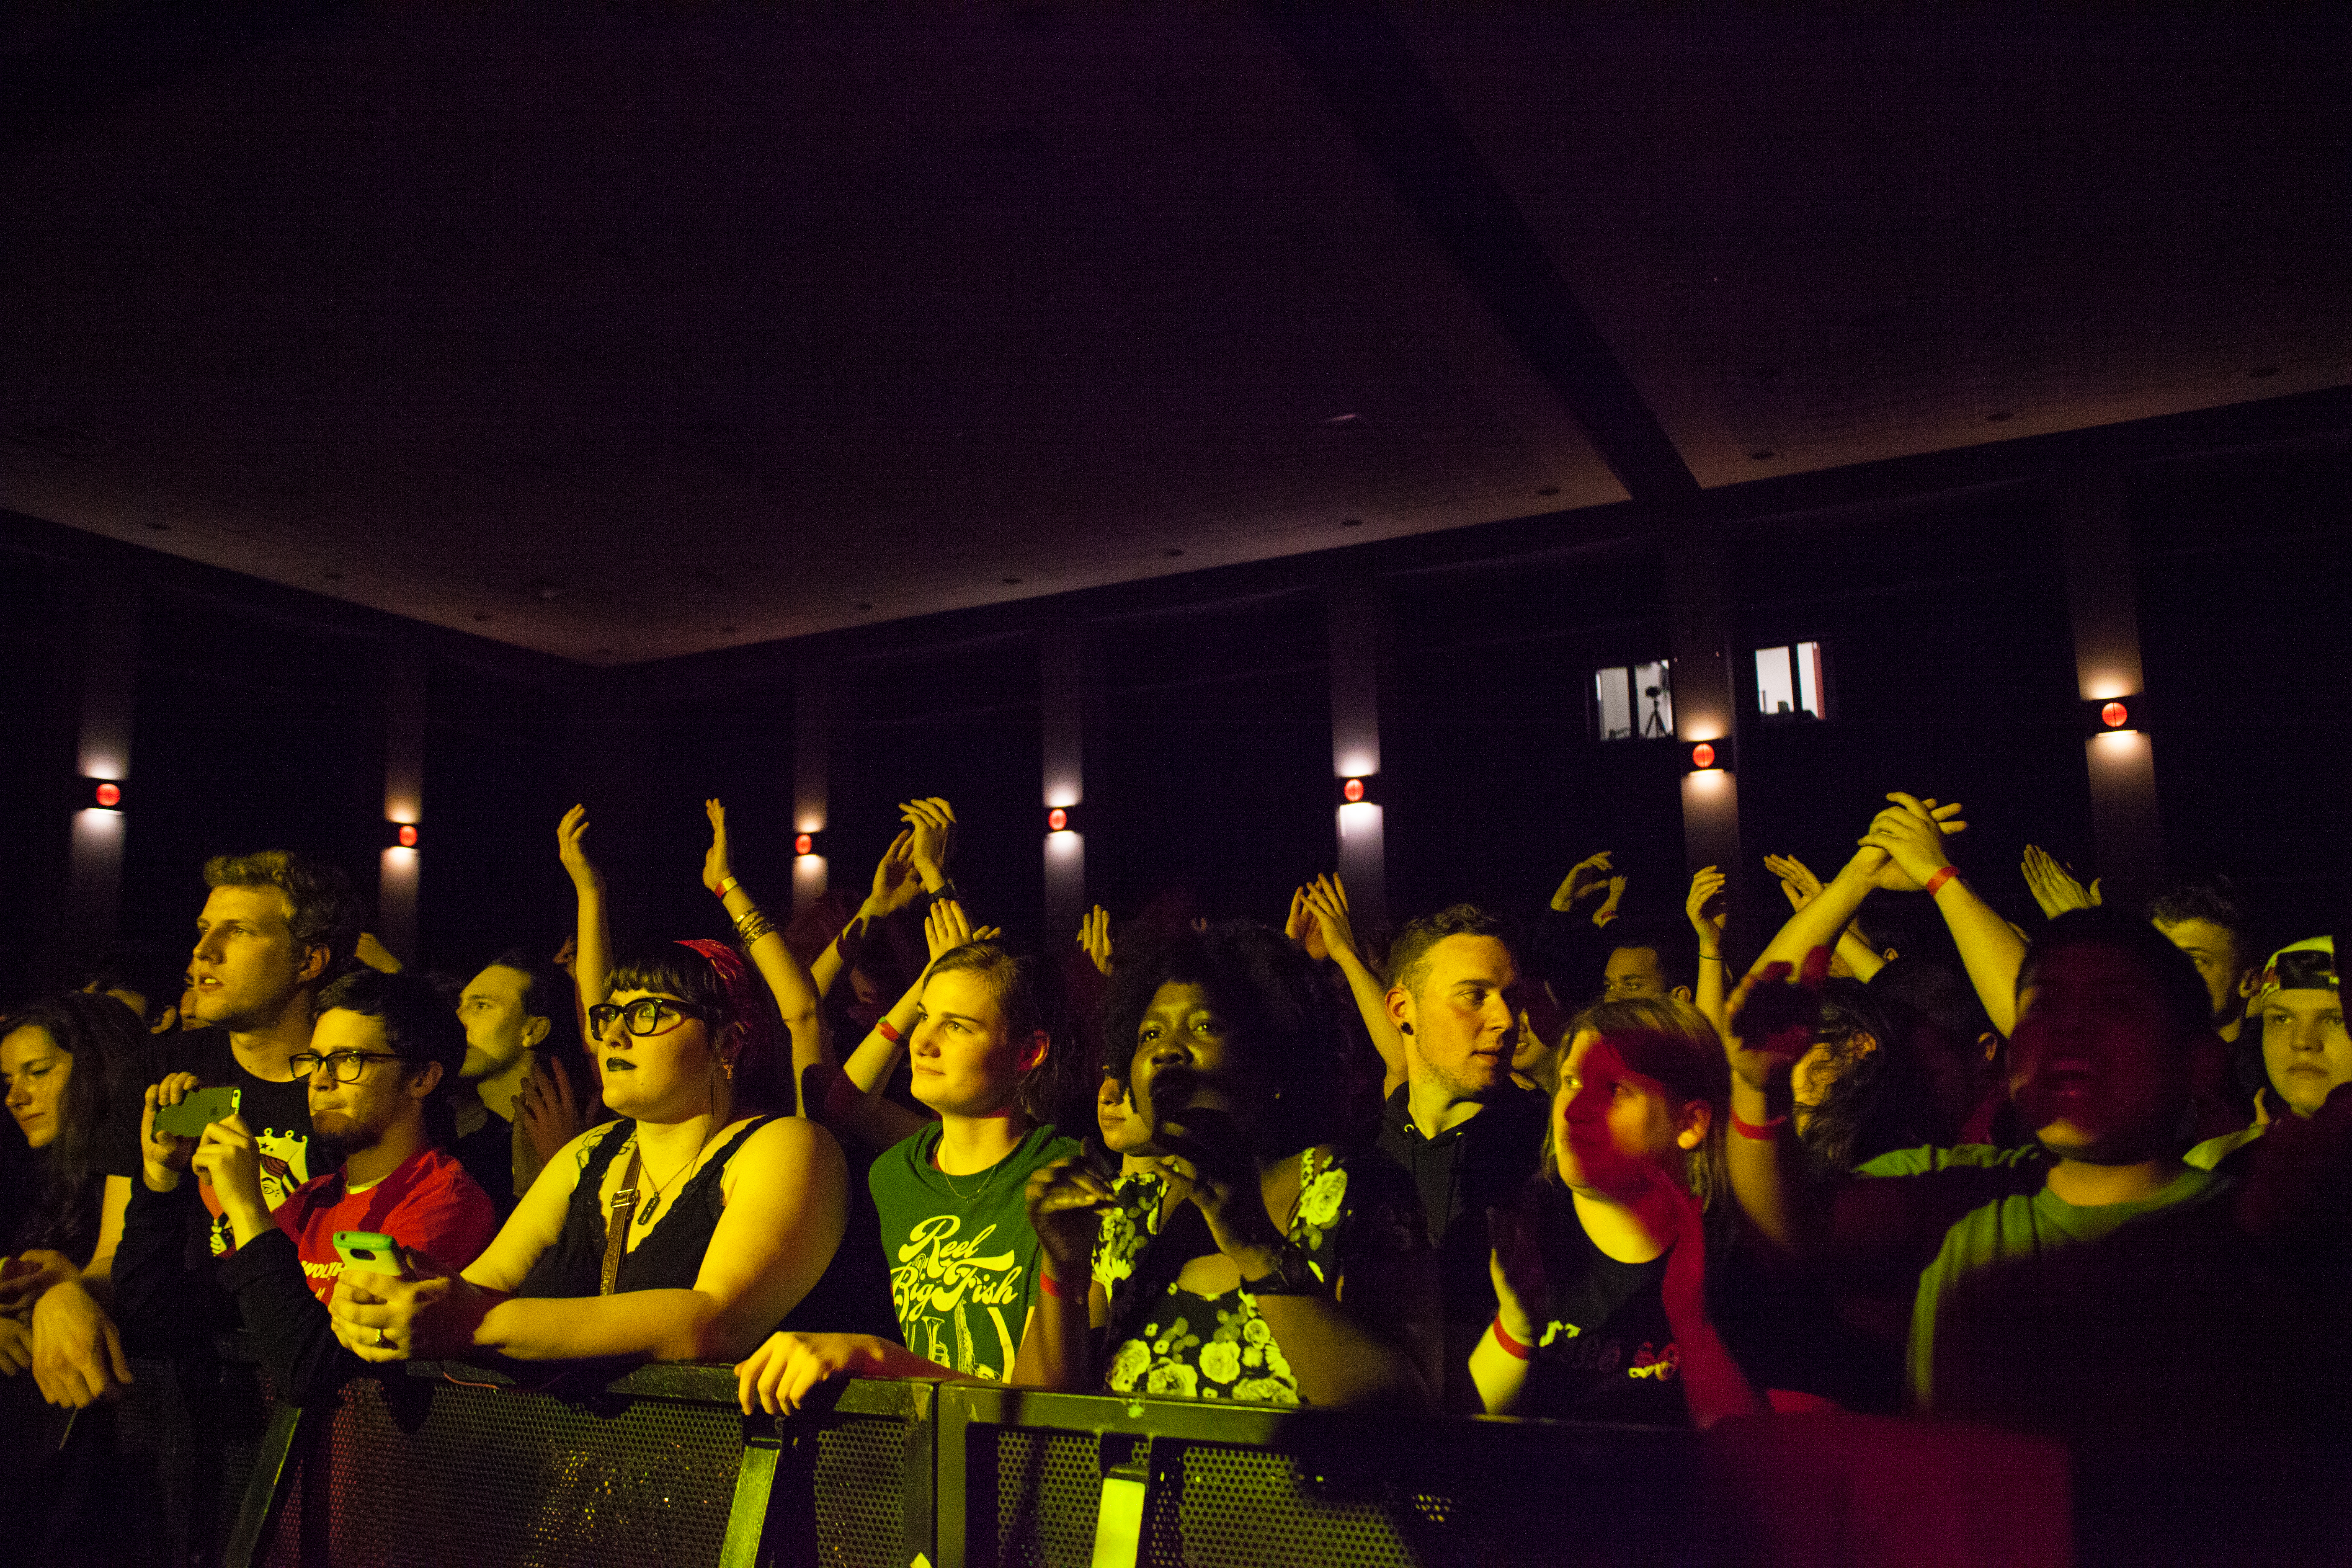 The crowd for the event was a mix of graduate and undergraduate students. Many of the students in attendance were able to grab a ticket to the show the second time around, as they did not hear about the initial show. KRYSTEN MASSA / THE STATESMAN